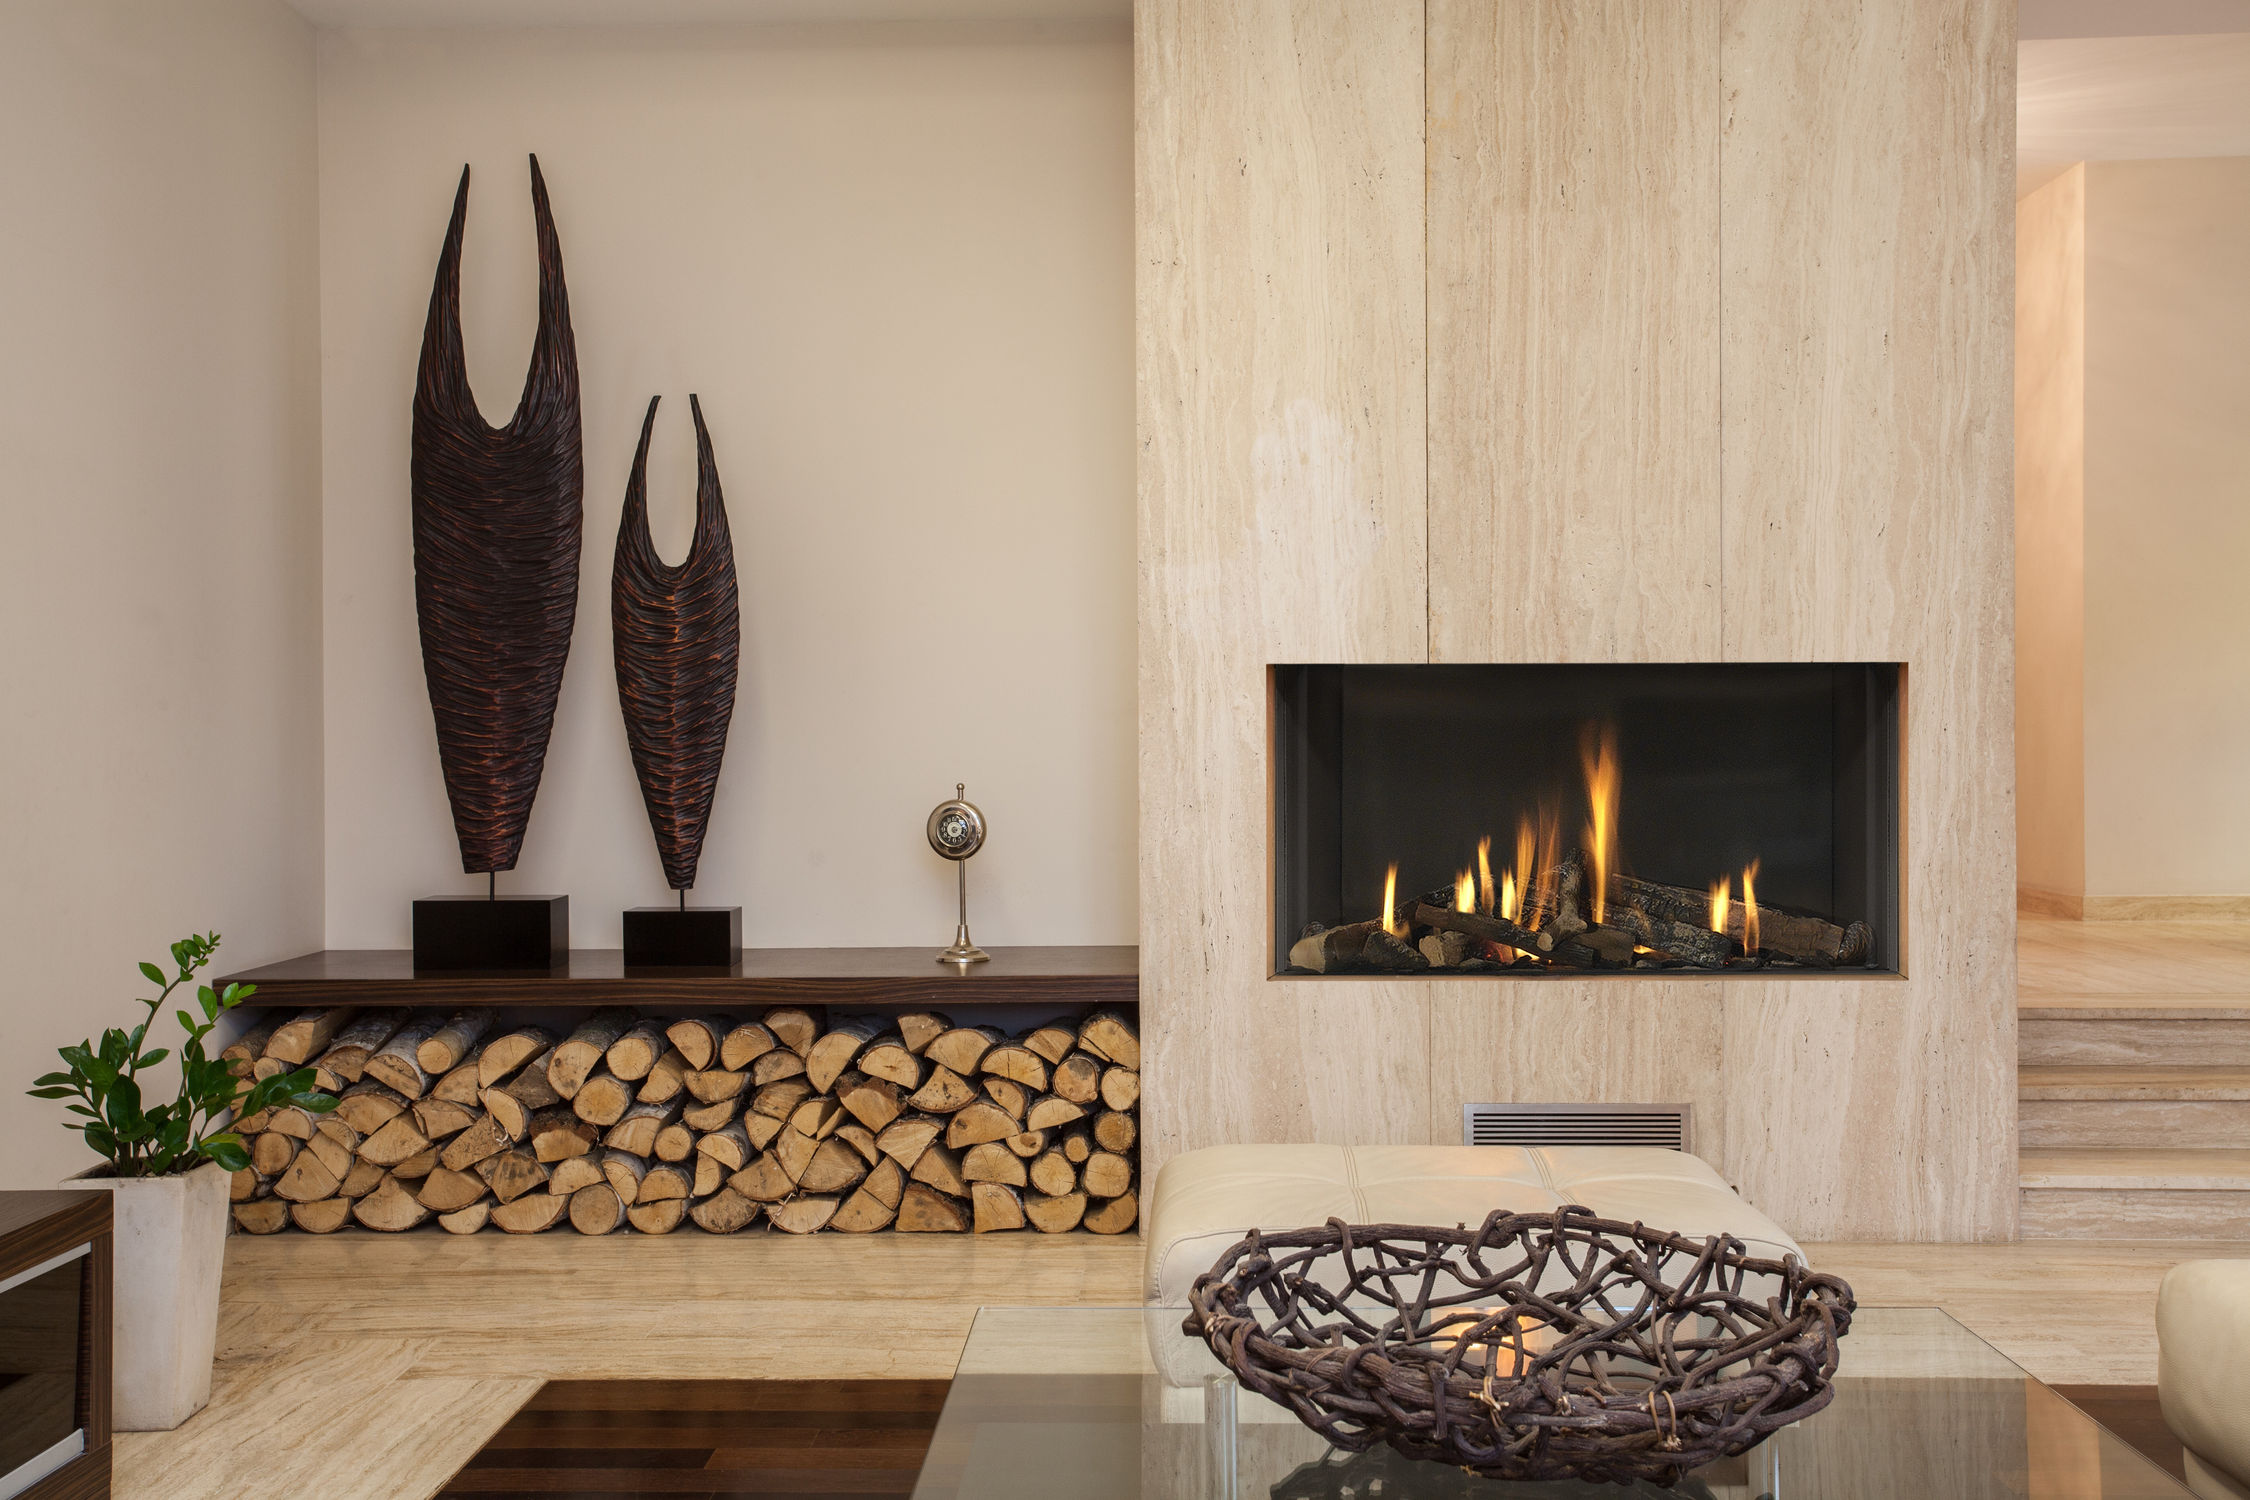 10 wood paneled column - Fireplace Design Ideas